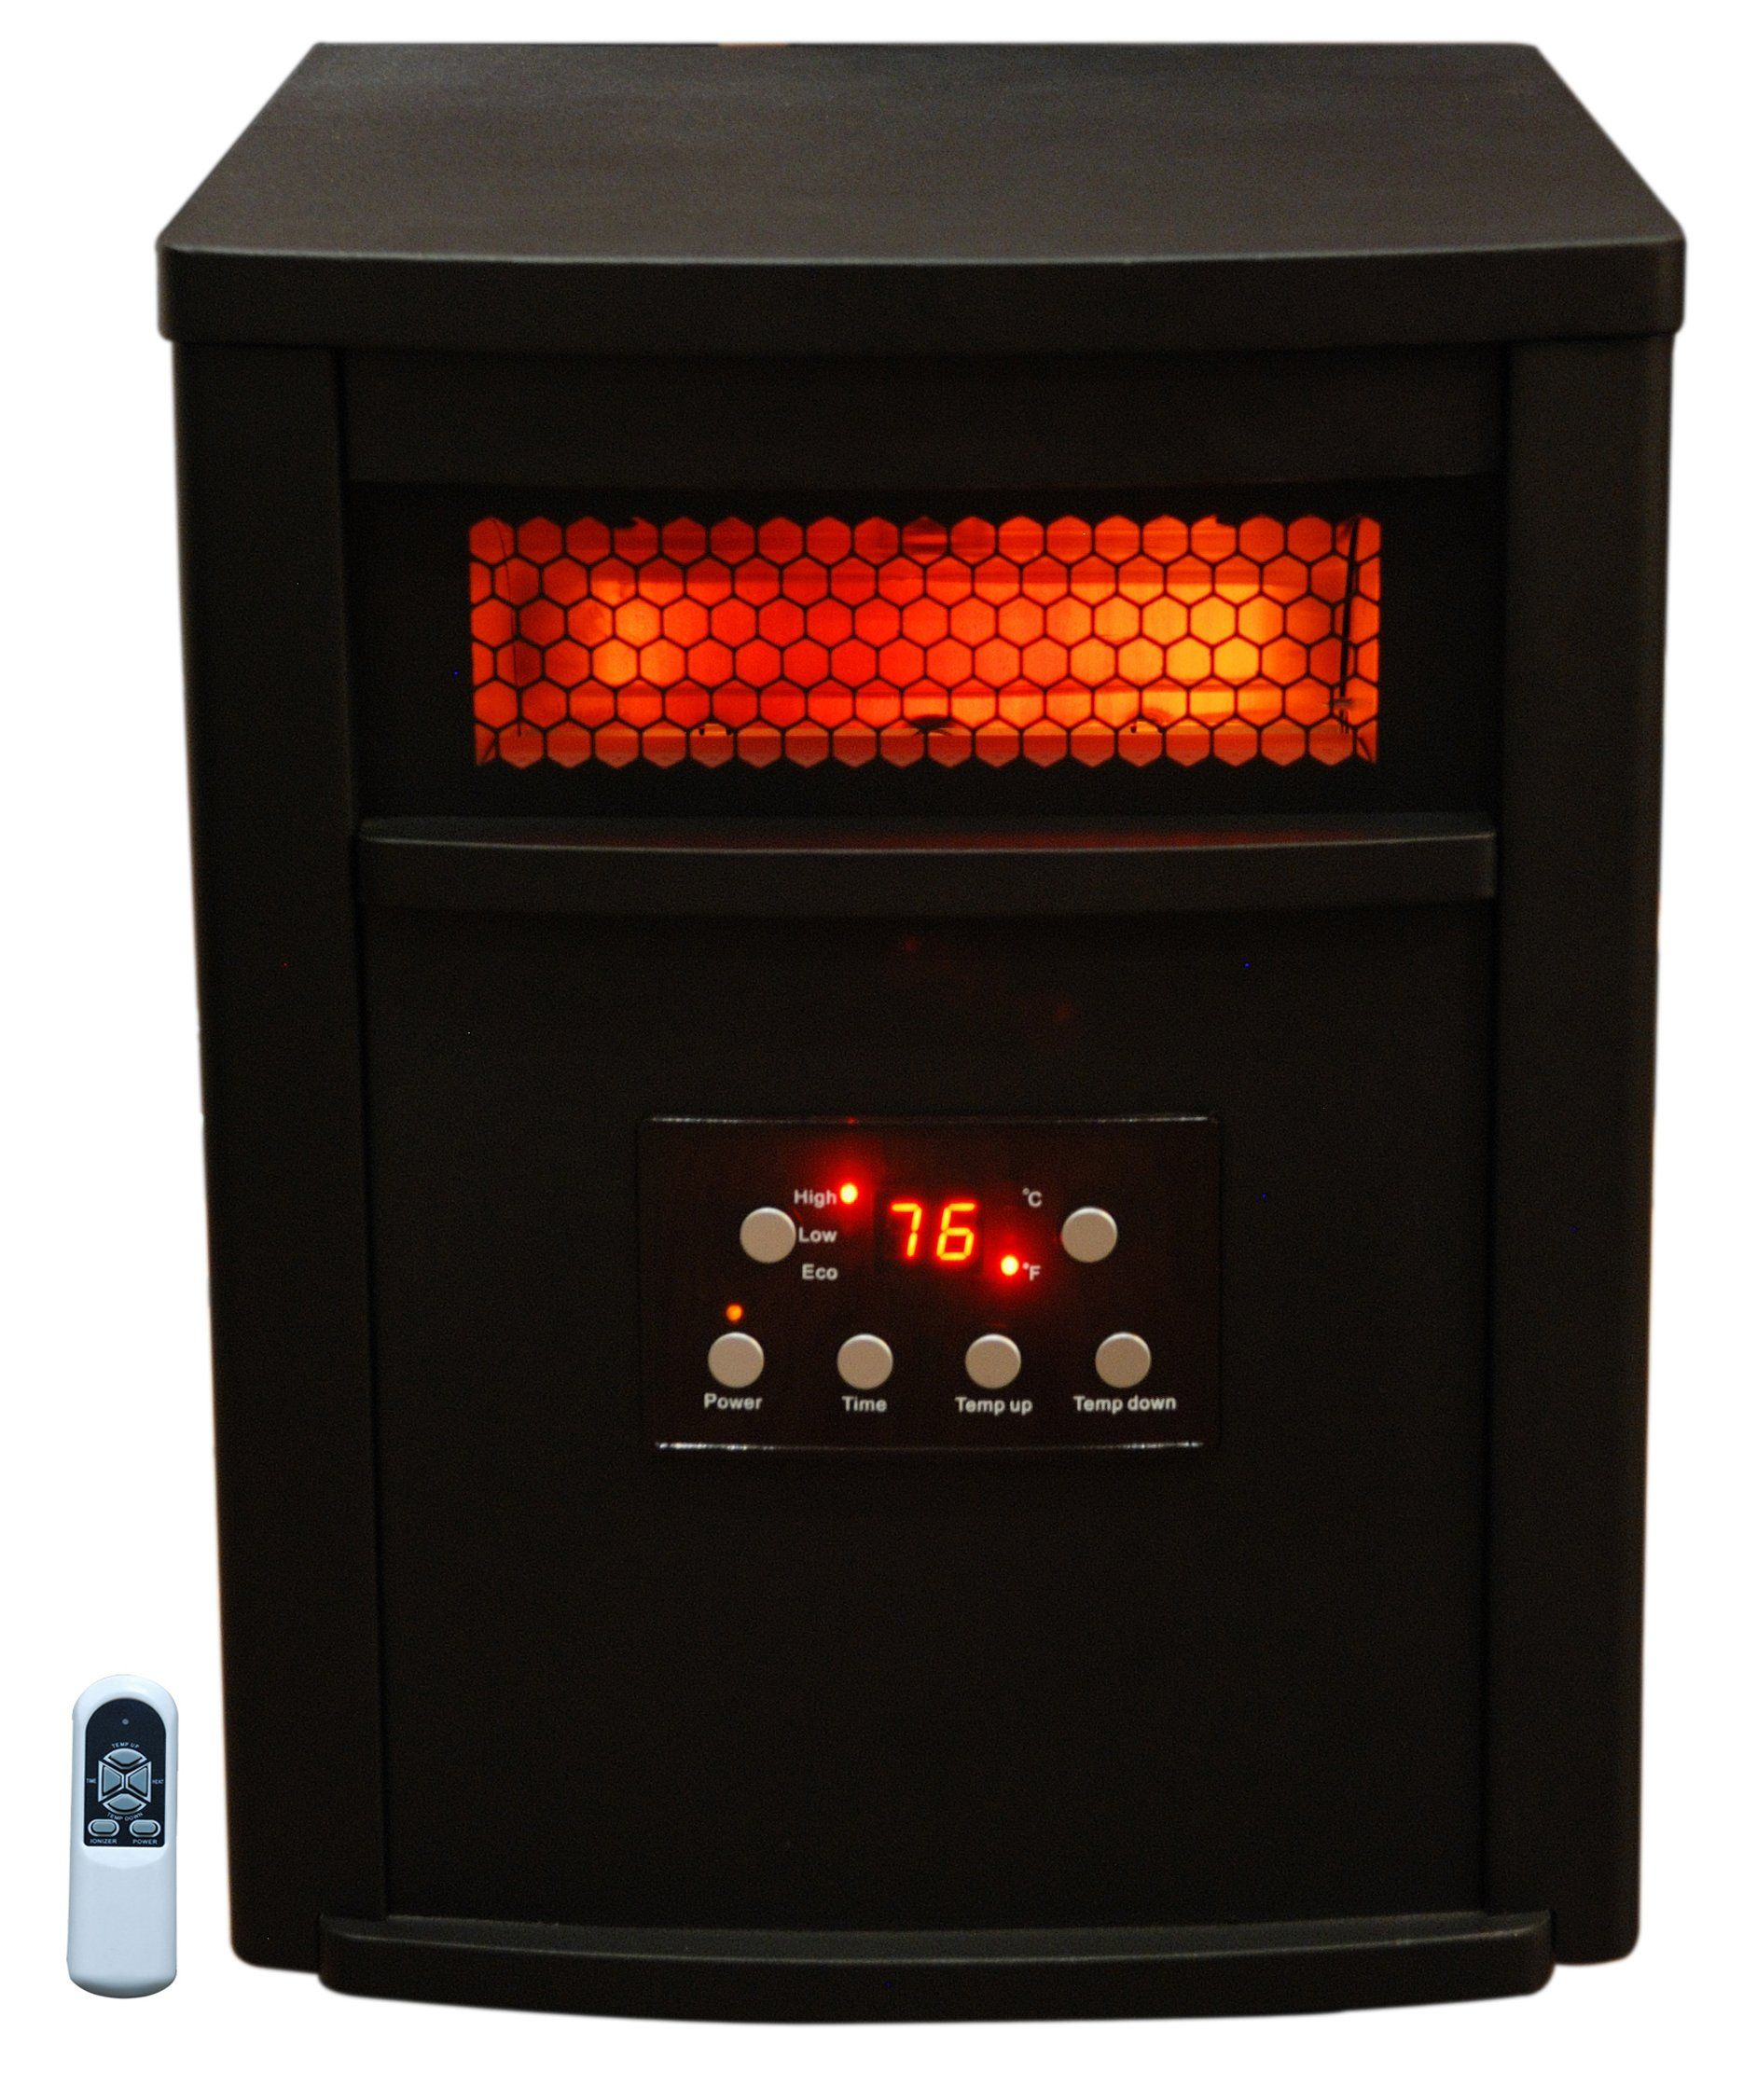 Lifesmart Life Pro Large Room 6 Element Infrared Heater Wremote